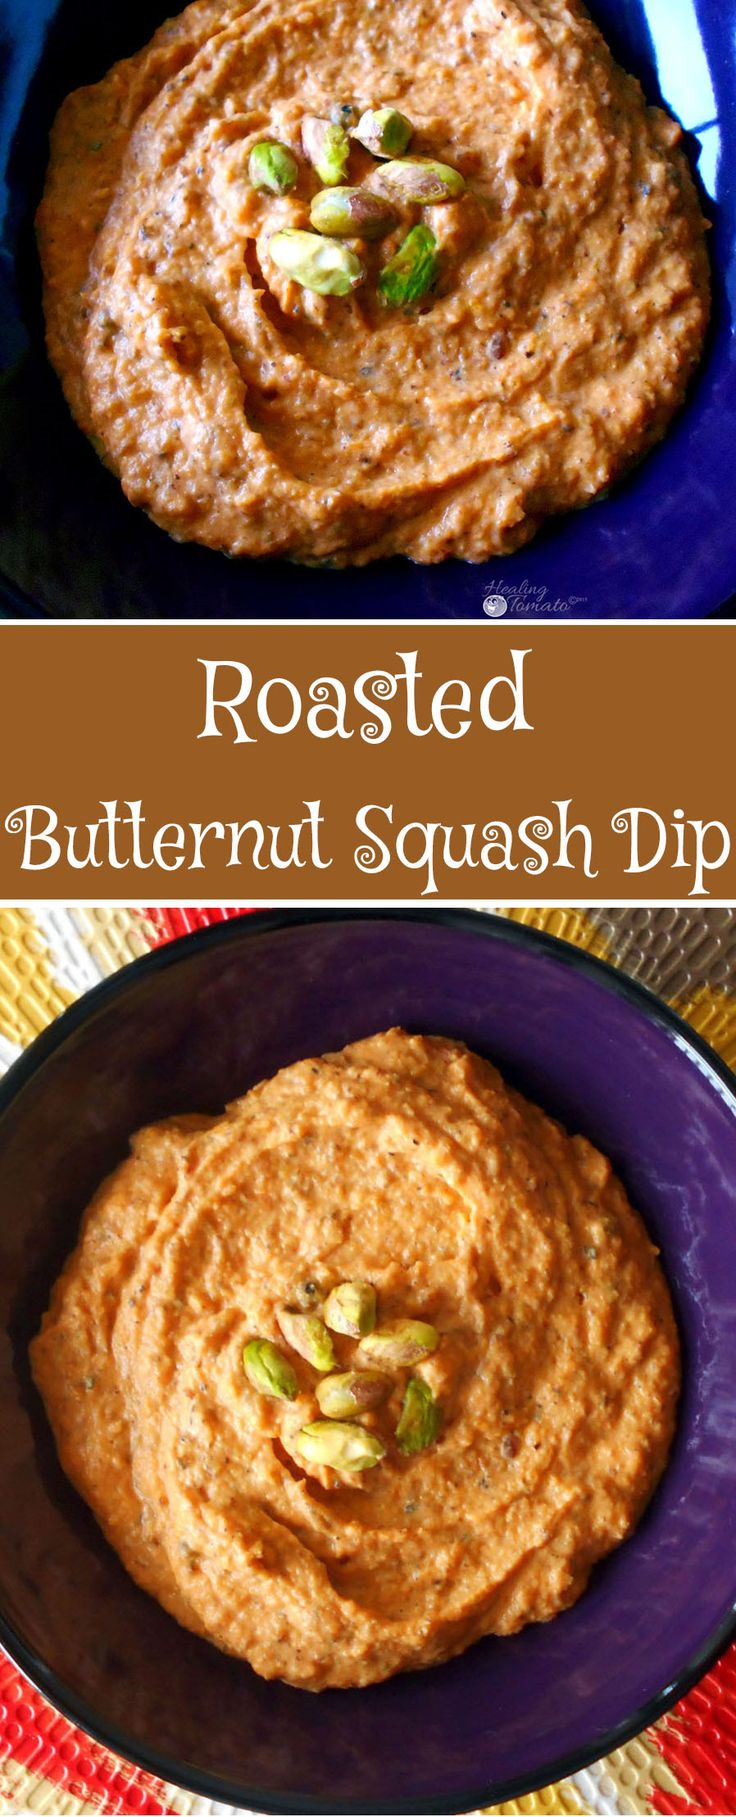 Roasted Butternut Squash Dip - Made using vegan yogurt even dairy. In fact, it's pure roasted Butternut, a dash of cinnamon, a squeeze of orange, and a drizzle of real Maple Syrup.